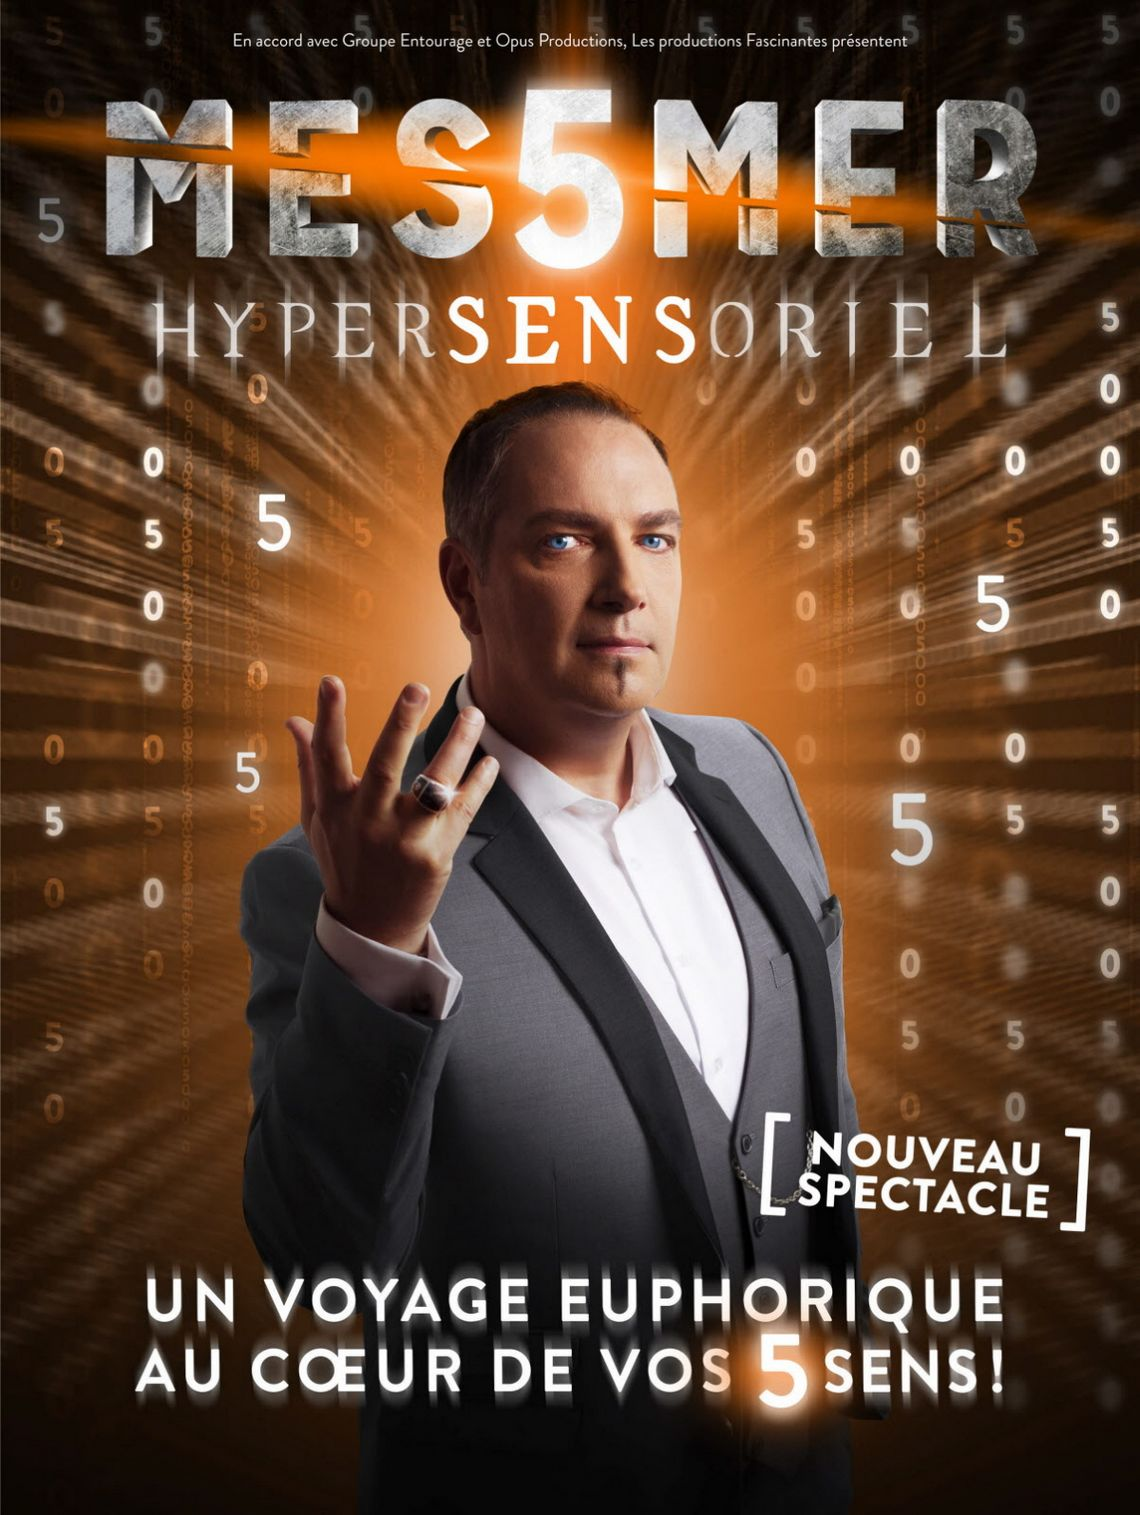 spectacle-messmer-hypnose-nantes-janvier-2020